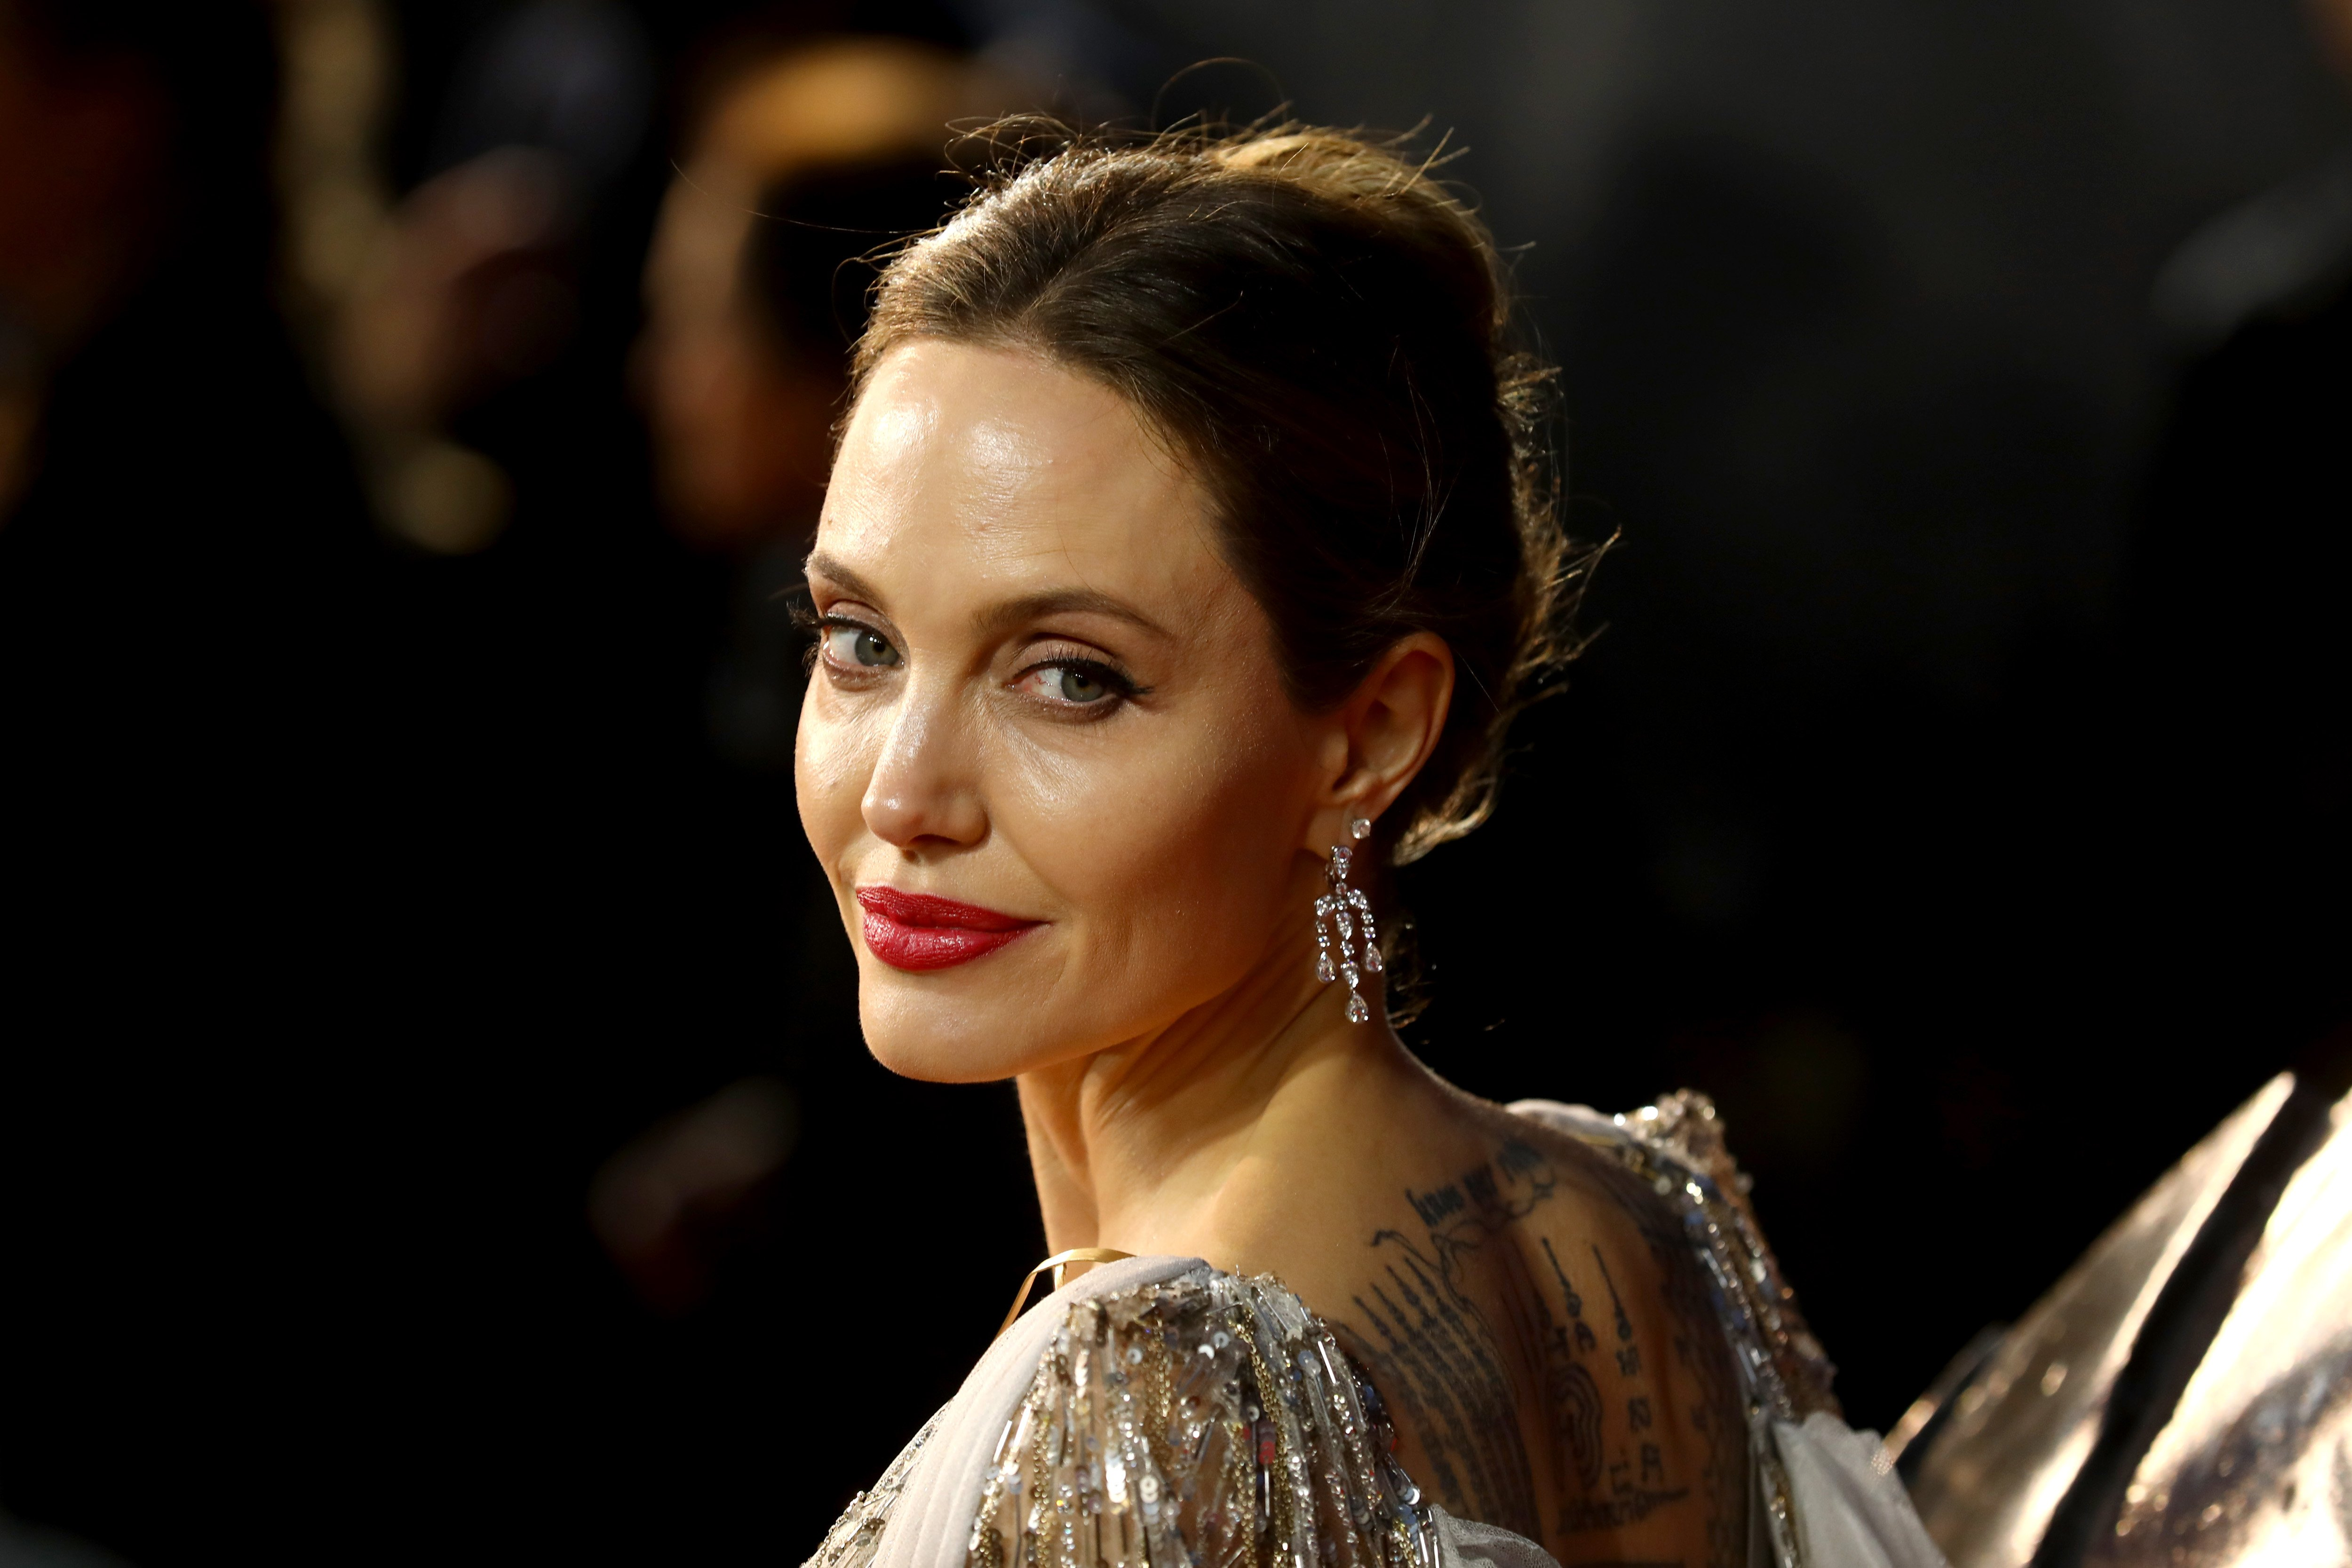 """Angelina Jolie attends the premiere of """"Maleficent: Mistress of Evil"""" in London, England on October 9, 2019 